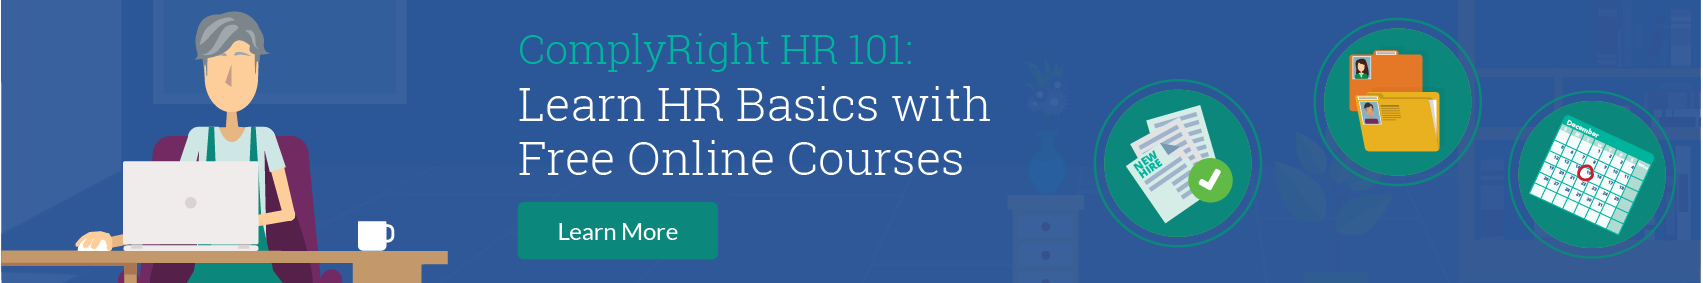 HRdirect HR 101 Courses